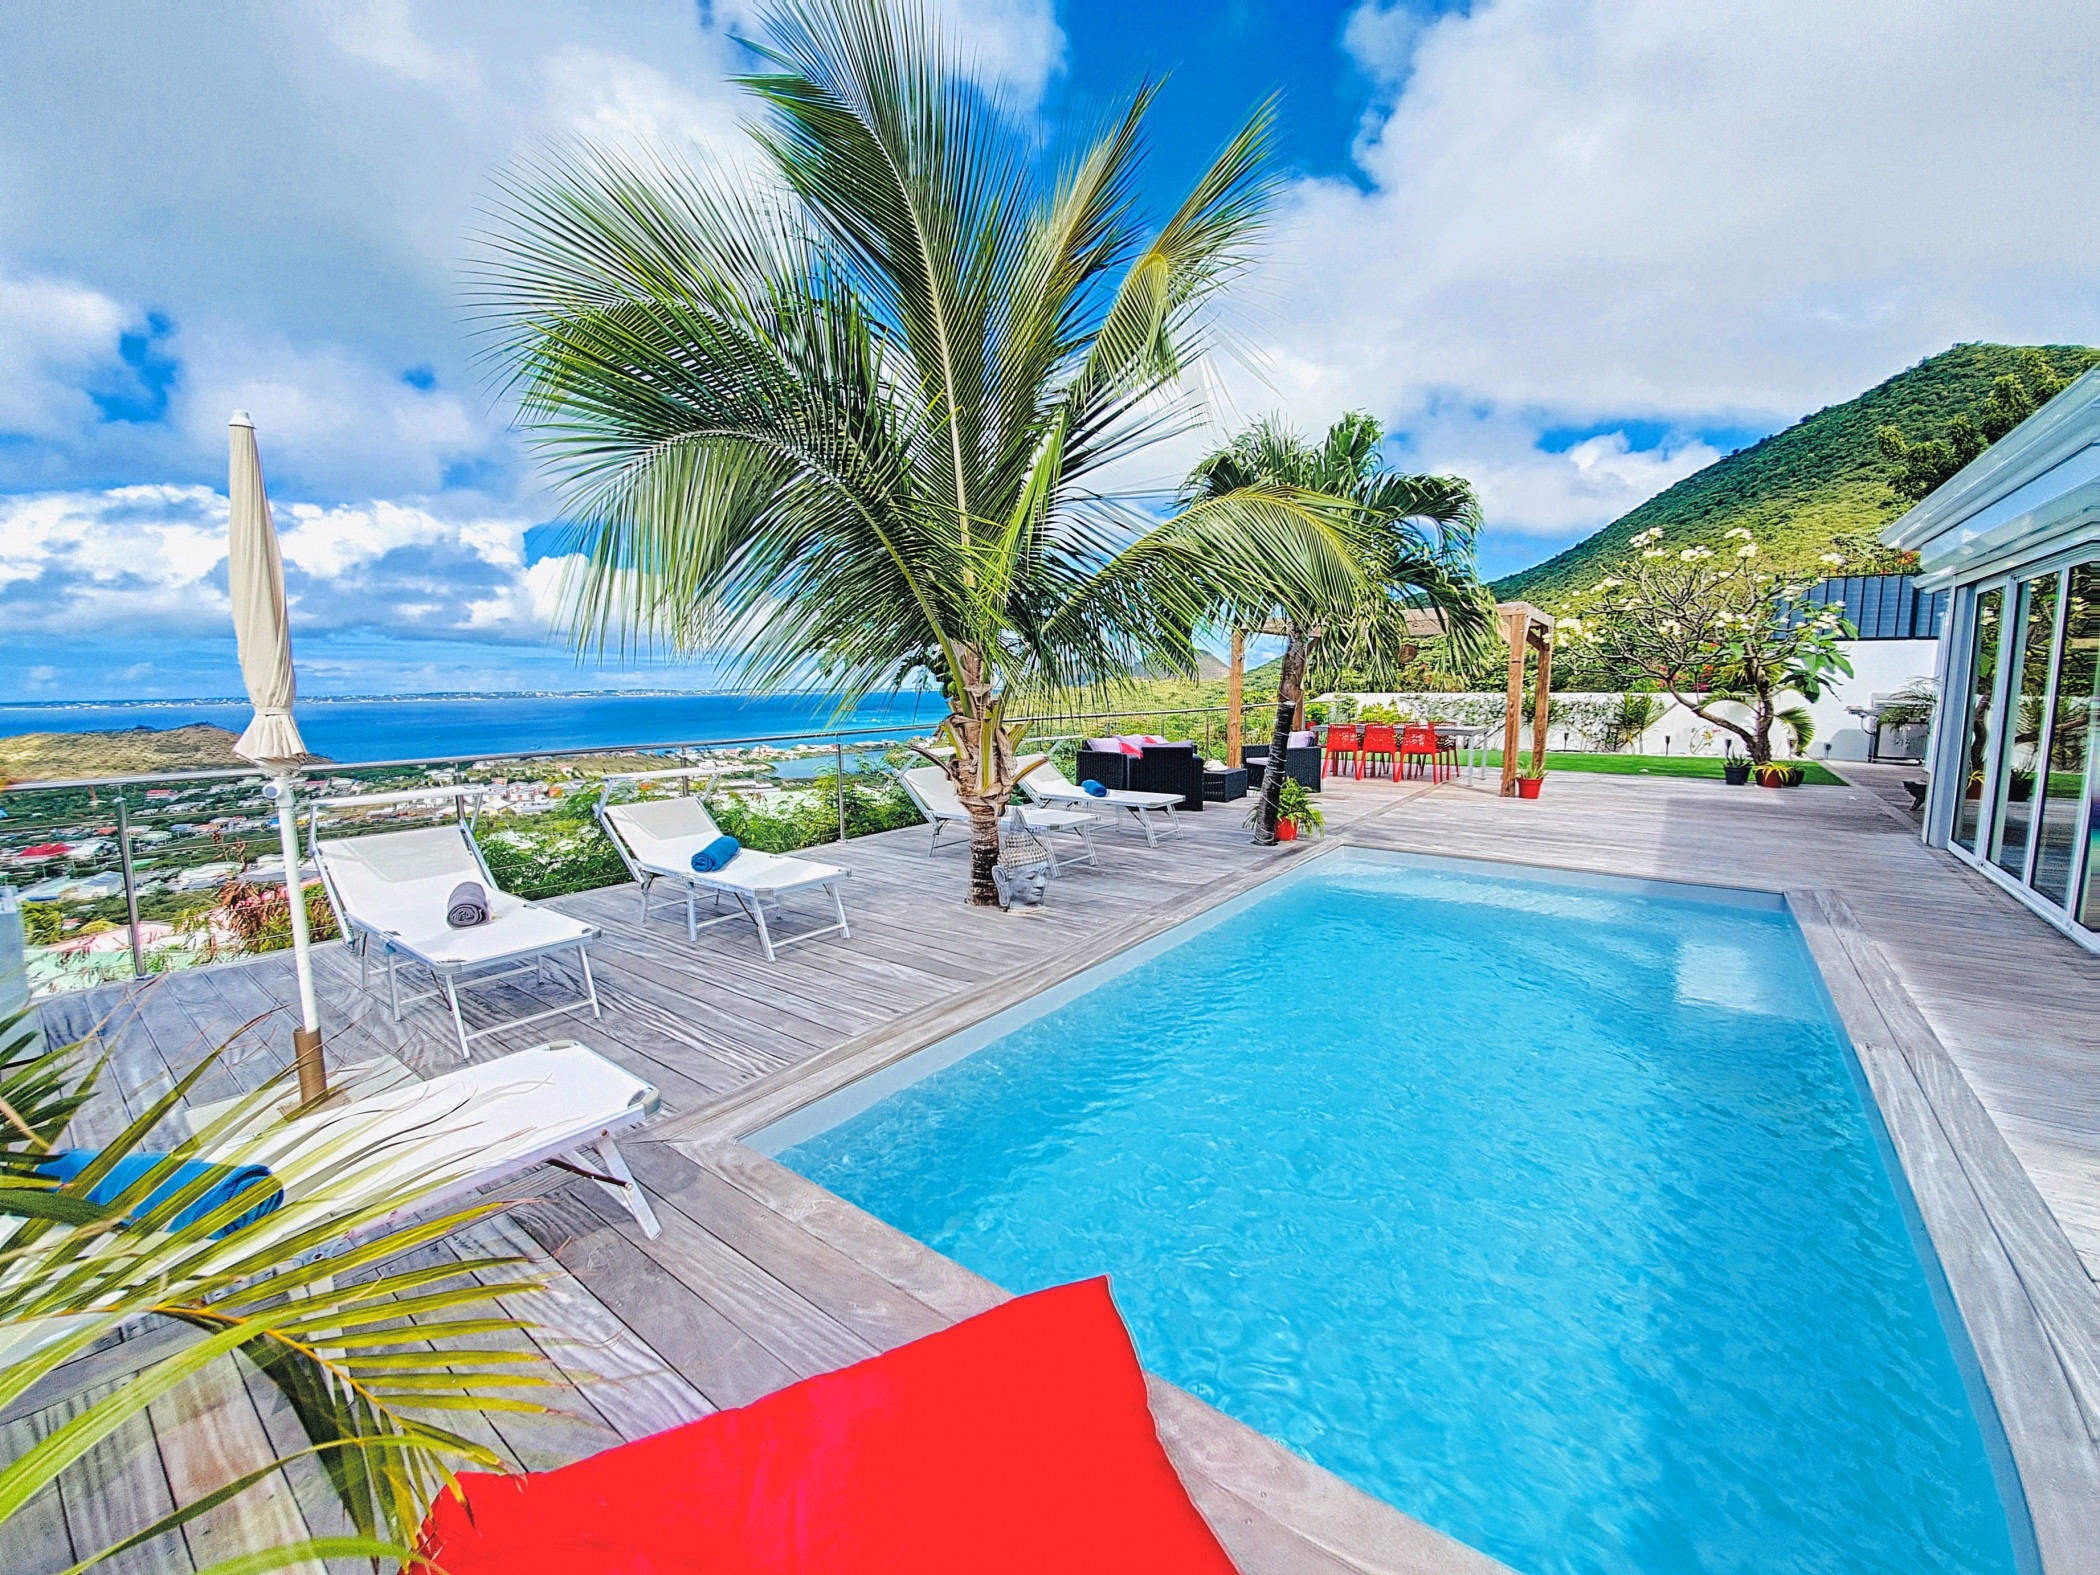 Villa SEA VIEW,  à 5 min de la plage de Grand Case, piscine privée